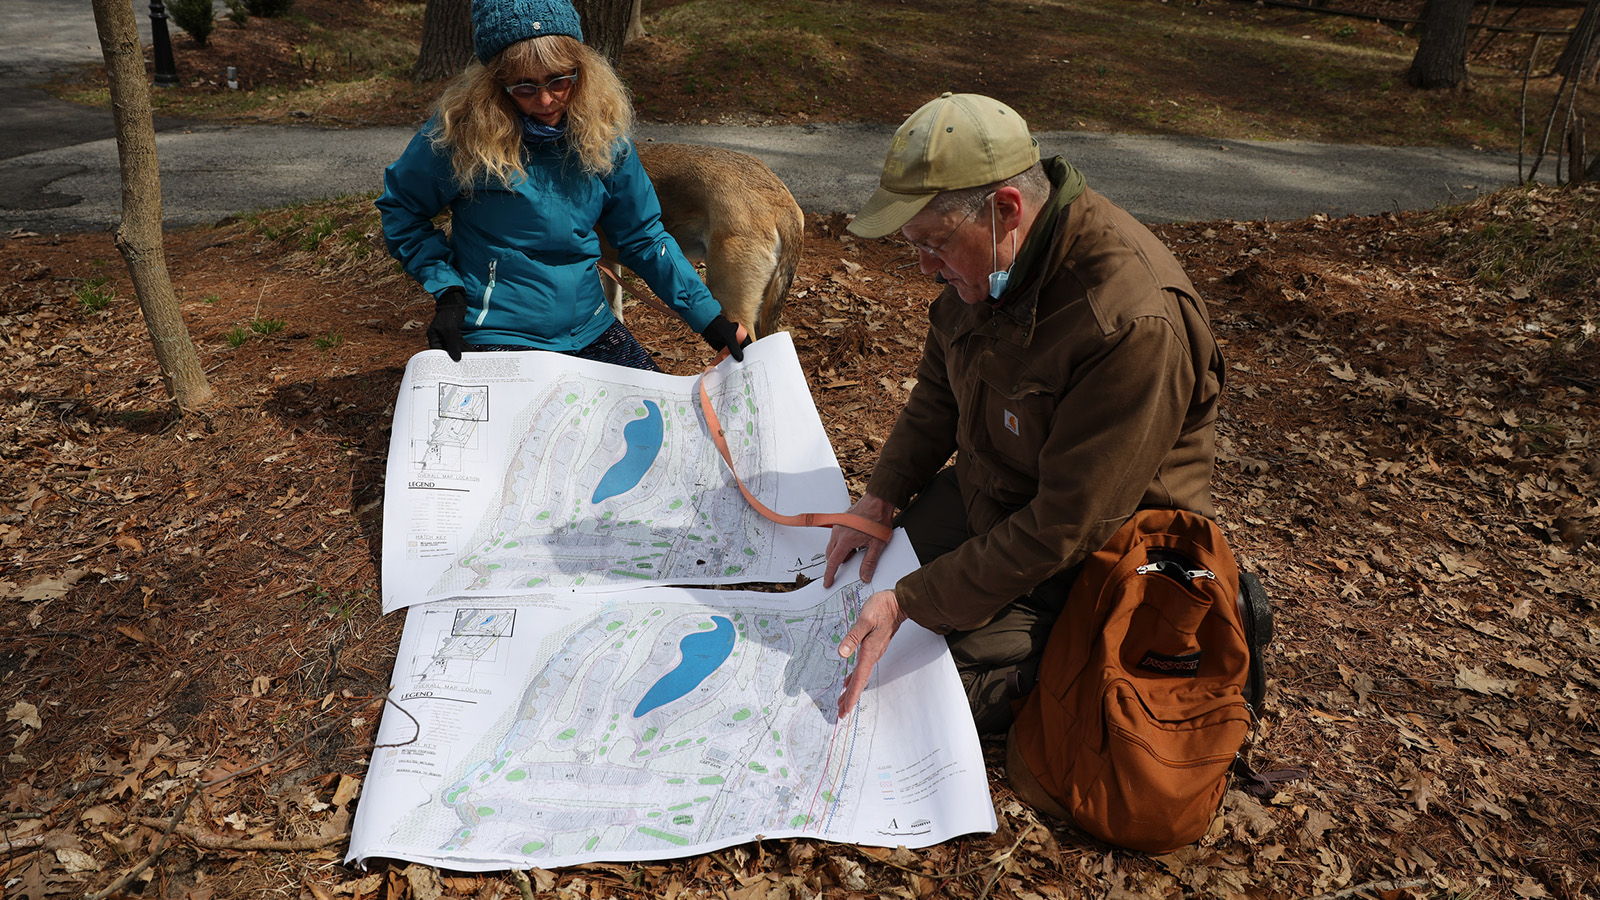 Two people crouch on ground and examine map of proposed golf course